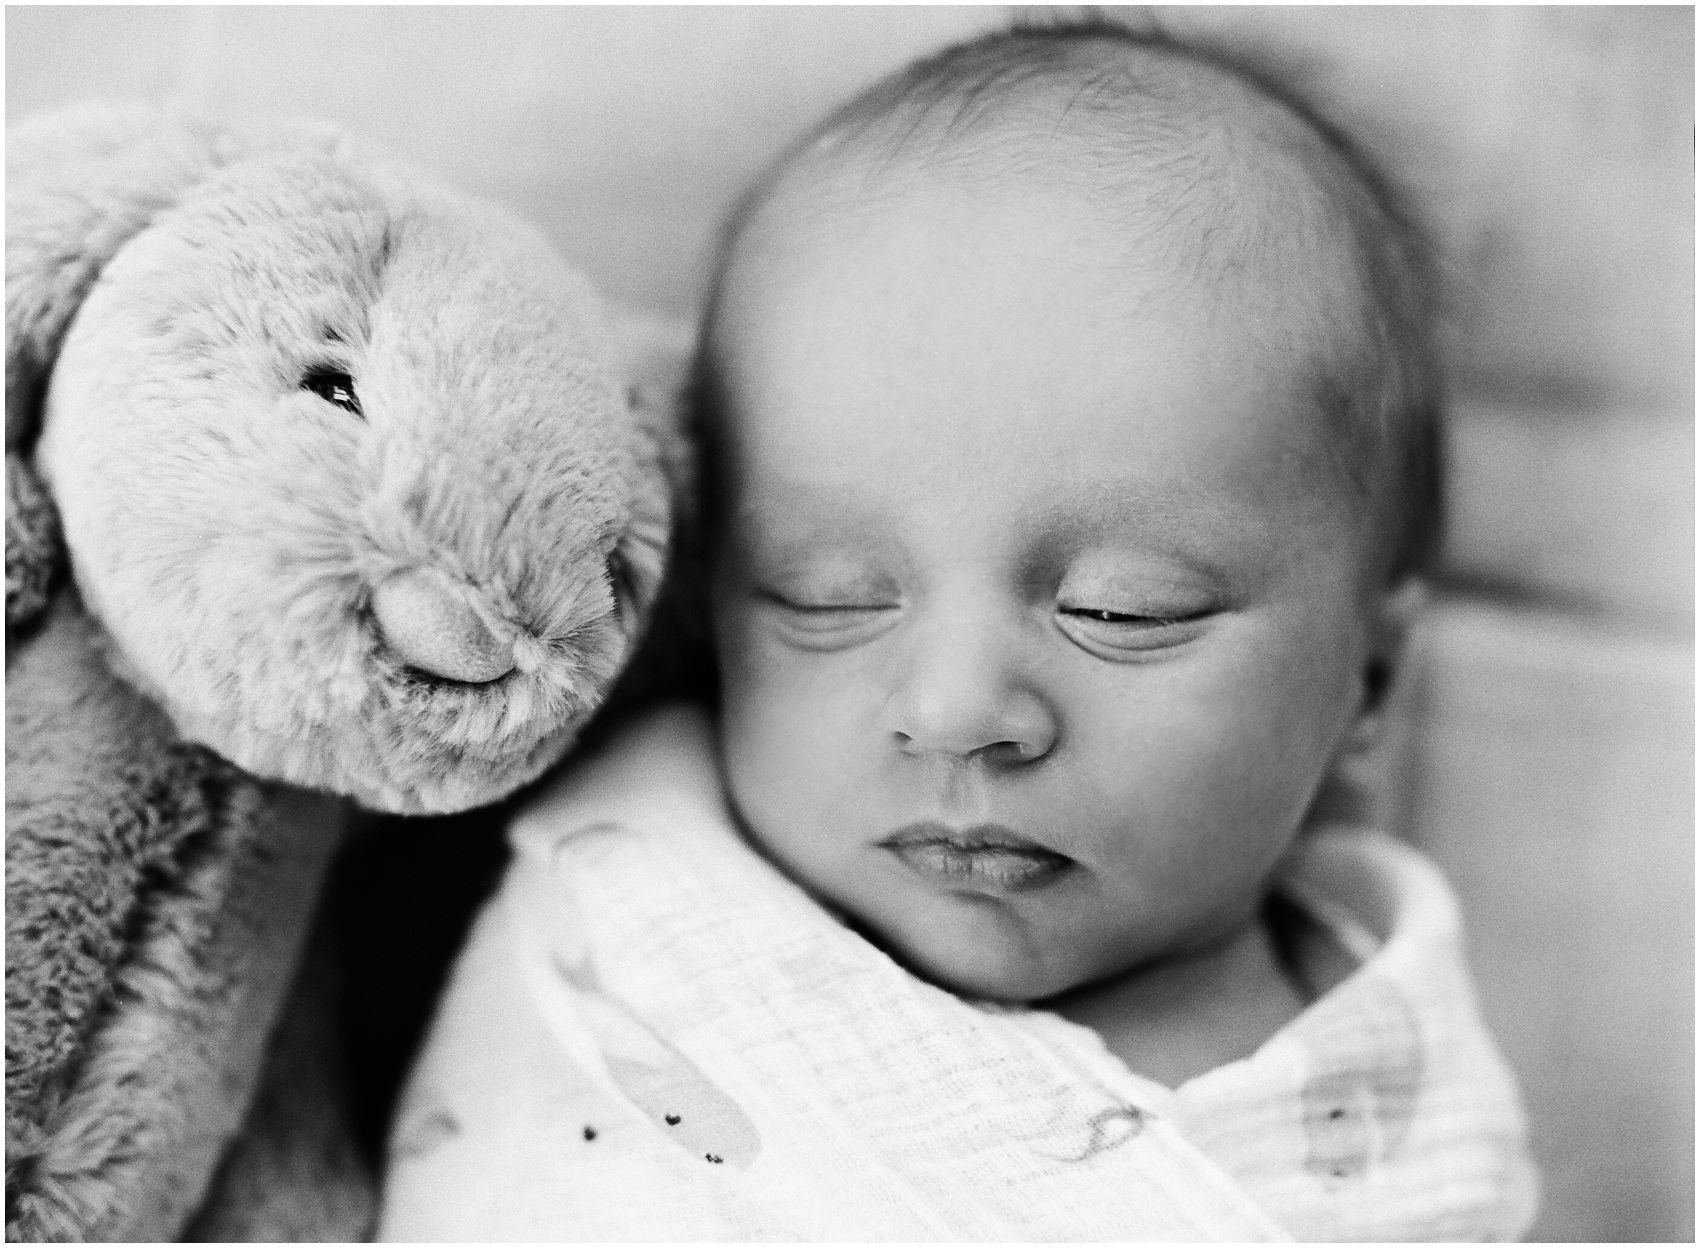 baby opening his one eye and sleeping with toy rabbit